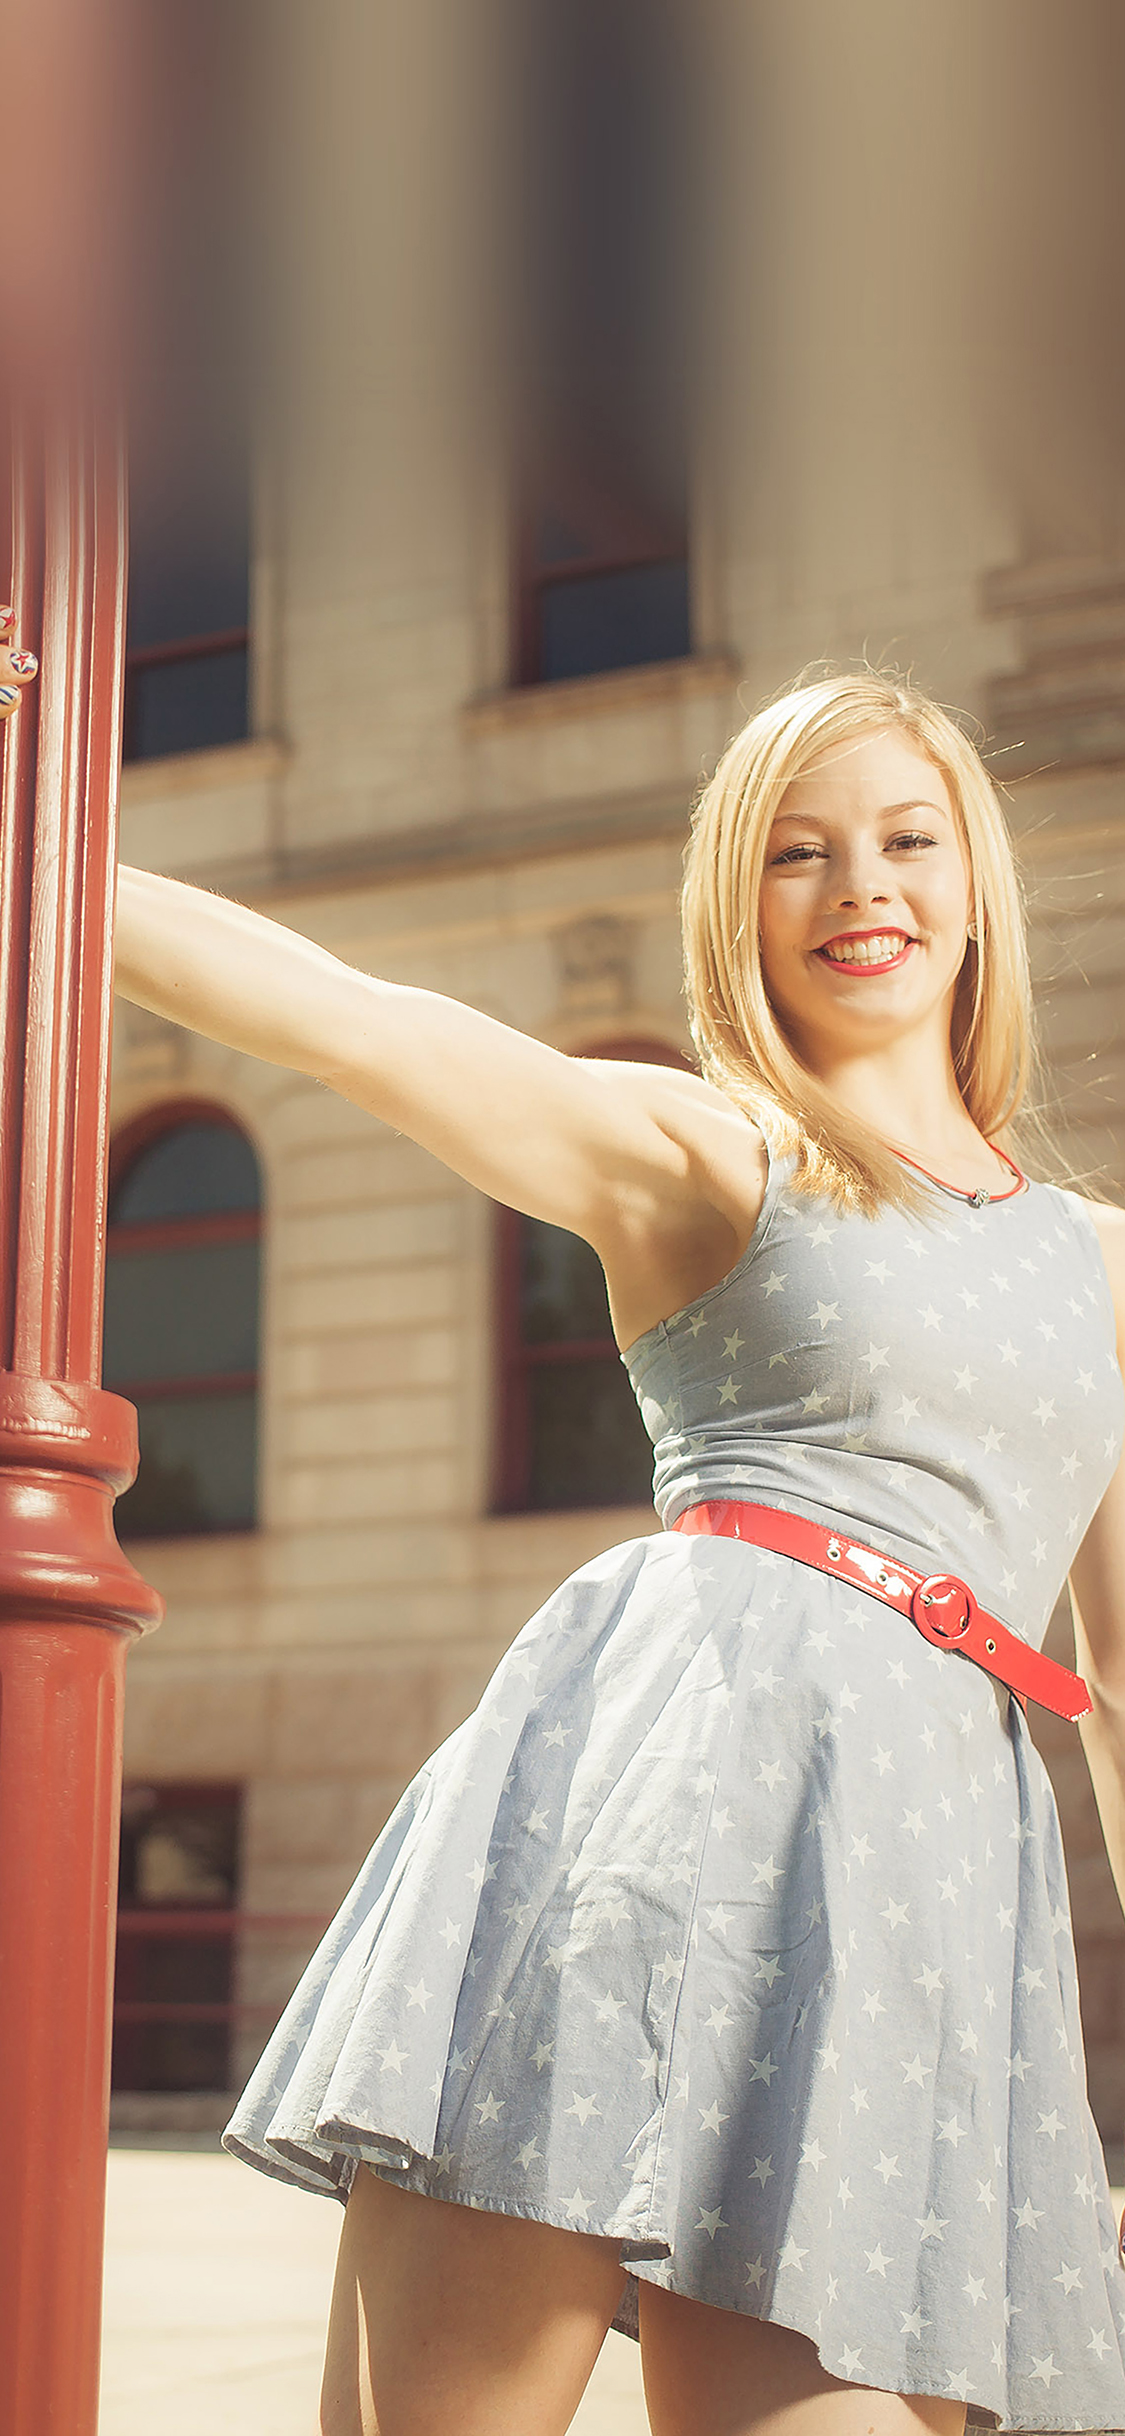 iPhoneXpapers.com-Apple-iPhone-wallpaper-ha59-wallpaper-gracie-gold-street-sports-girl-face